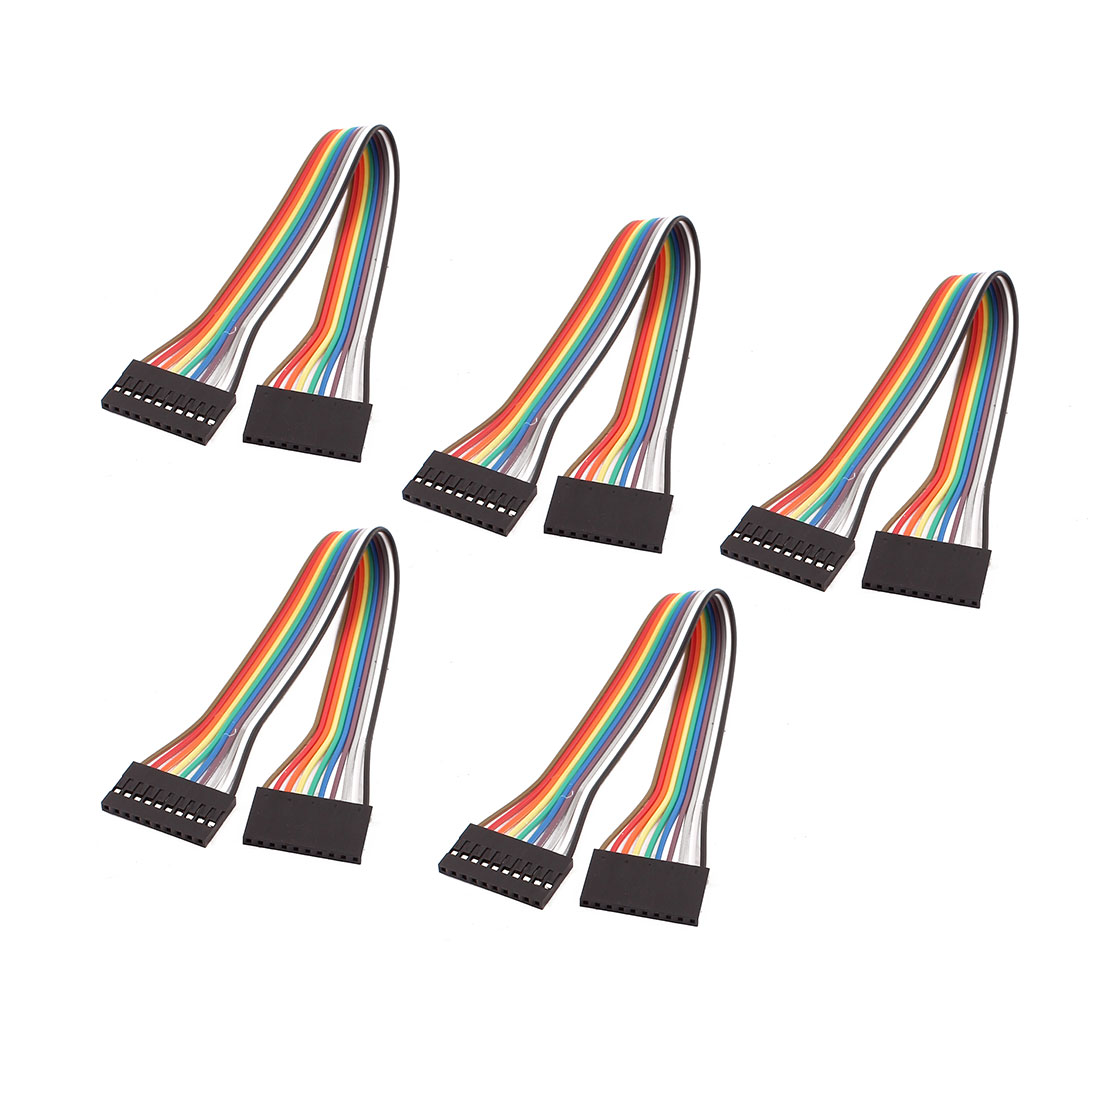 5PCS 2.54mm Pitch 10P Female Breadboard Double Head Jumper Wire Cable 20cm Long